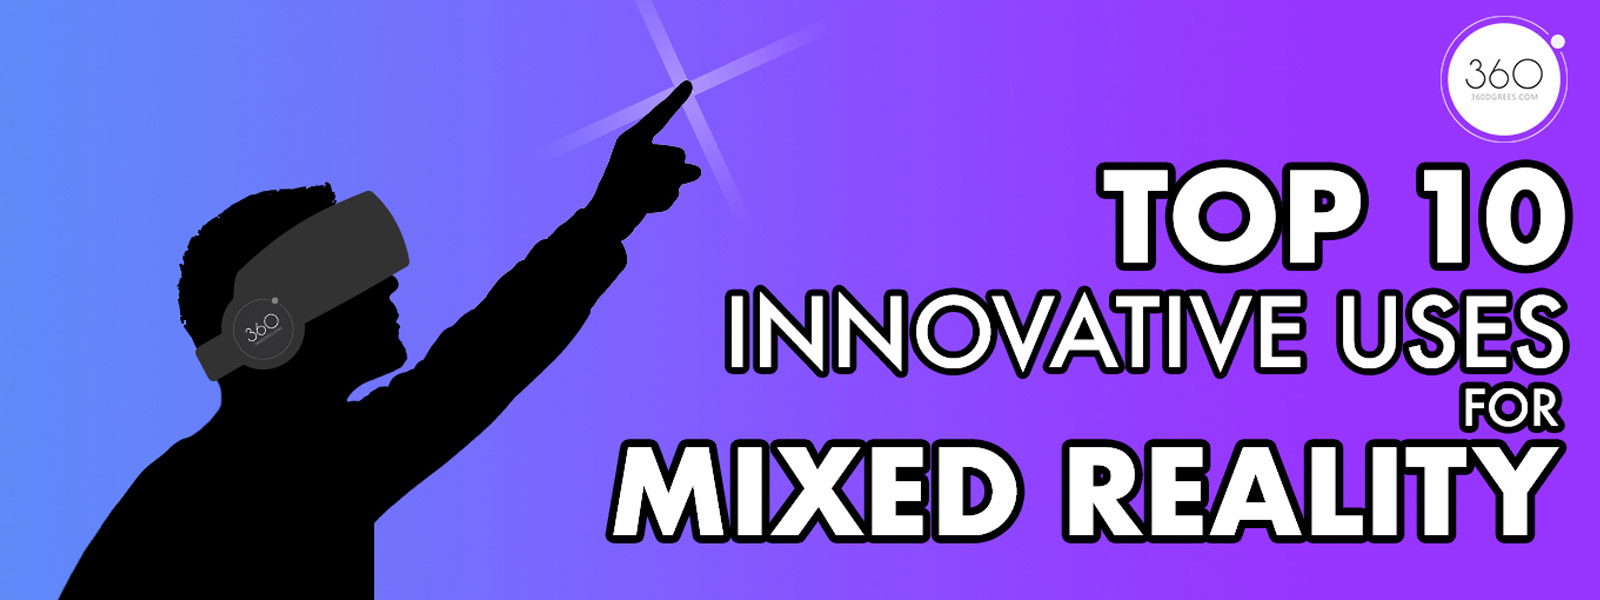 Top 10 innovative uses for mixed reality